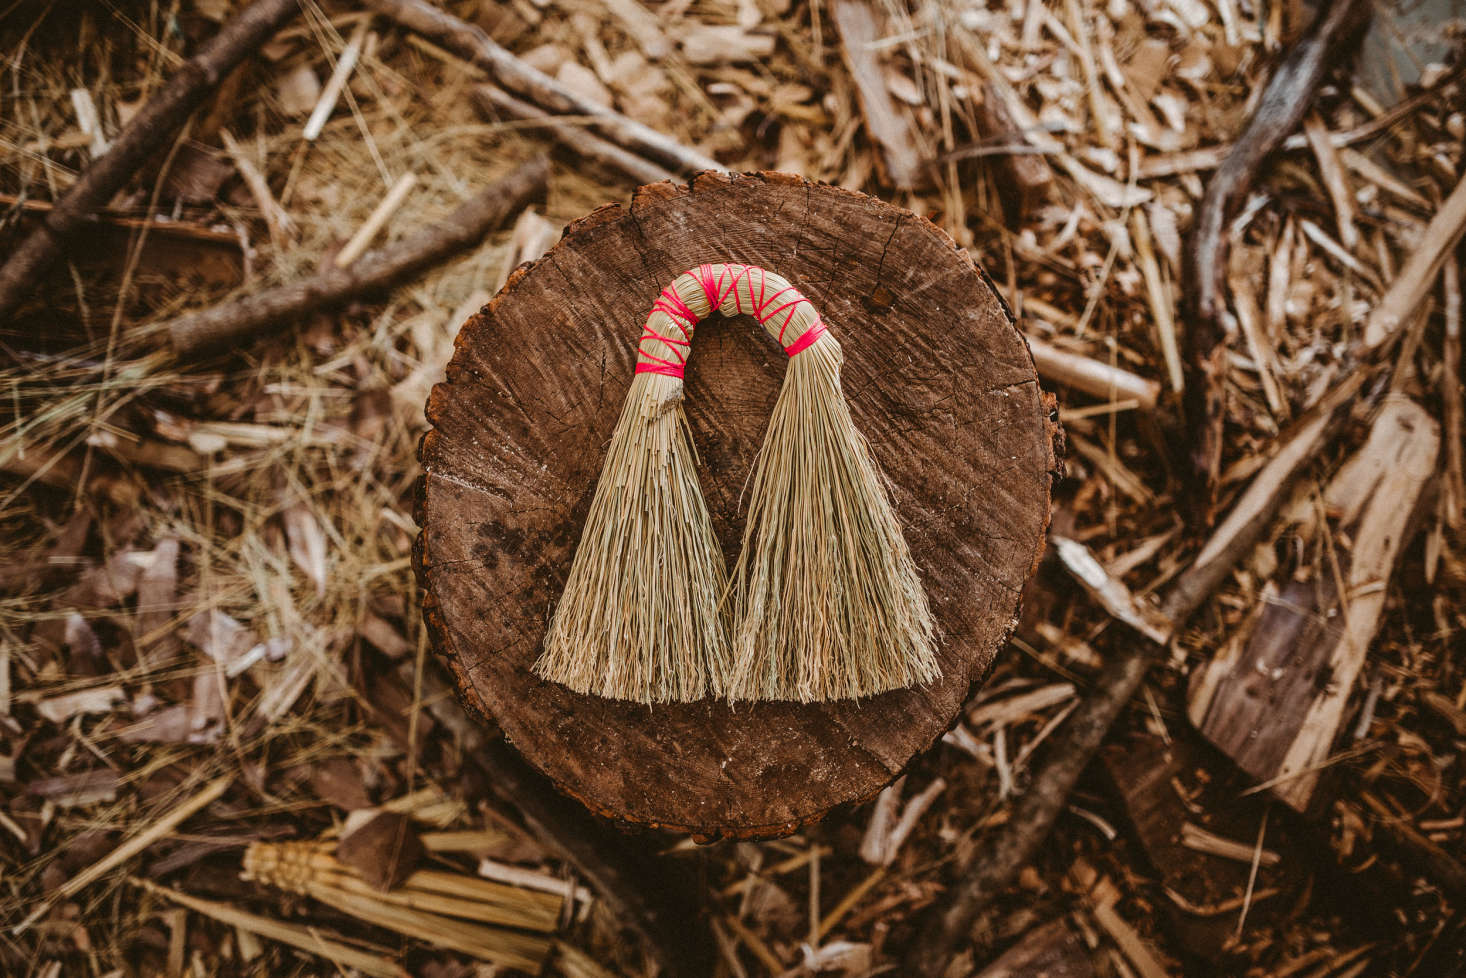 Frankies Broom ($) is the first I spotted on the Minka website, with a charmingly imperfect wrapped handle. (It&#8